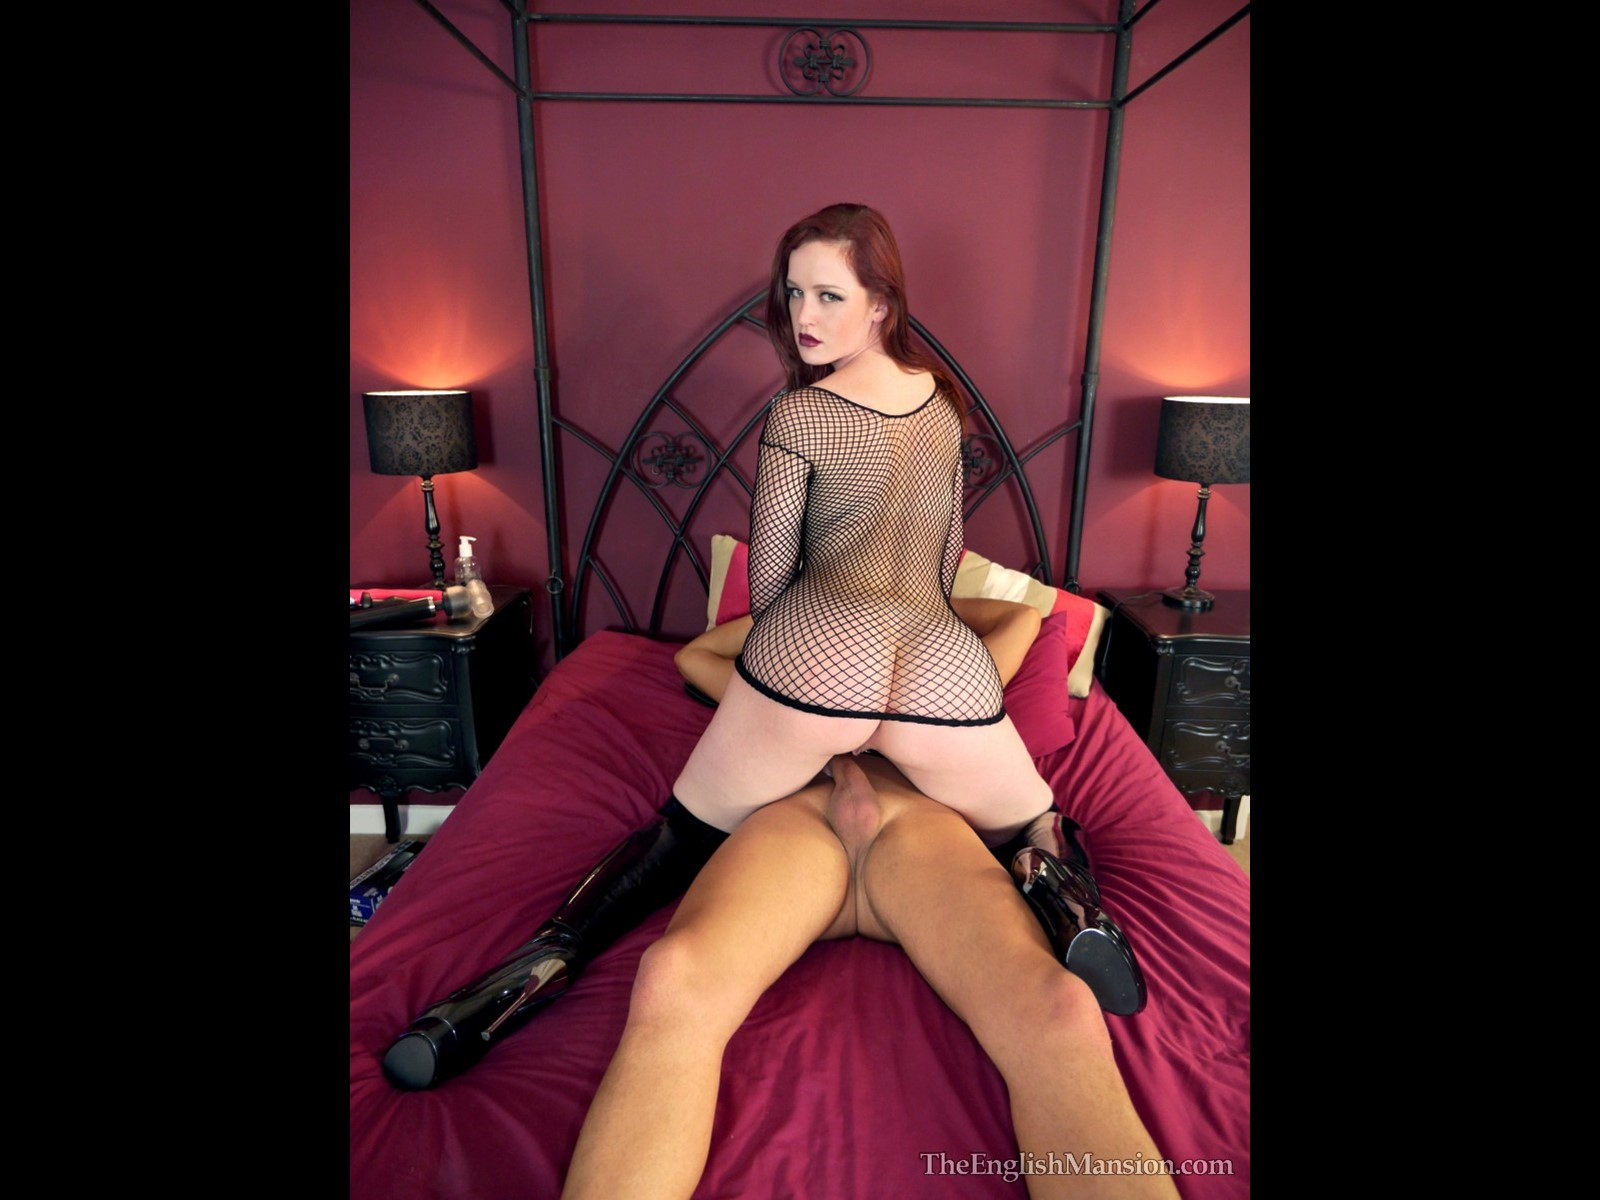 Teasing Slave English Mansion Mistress Vivienne Cuckolding Dominatrix